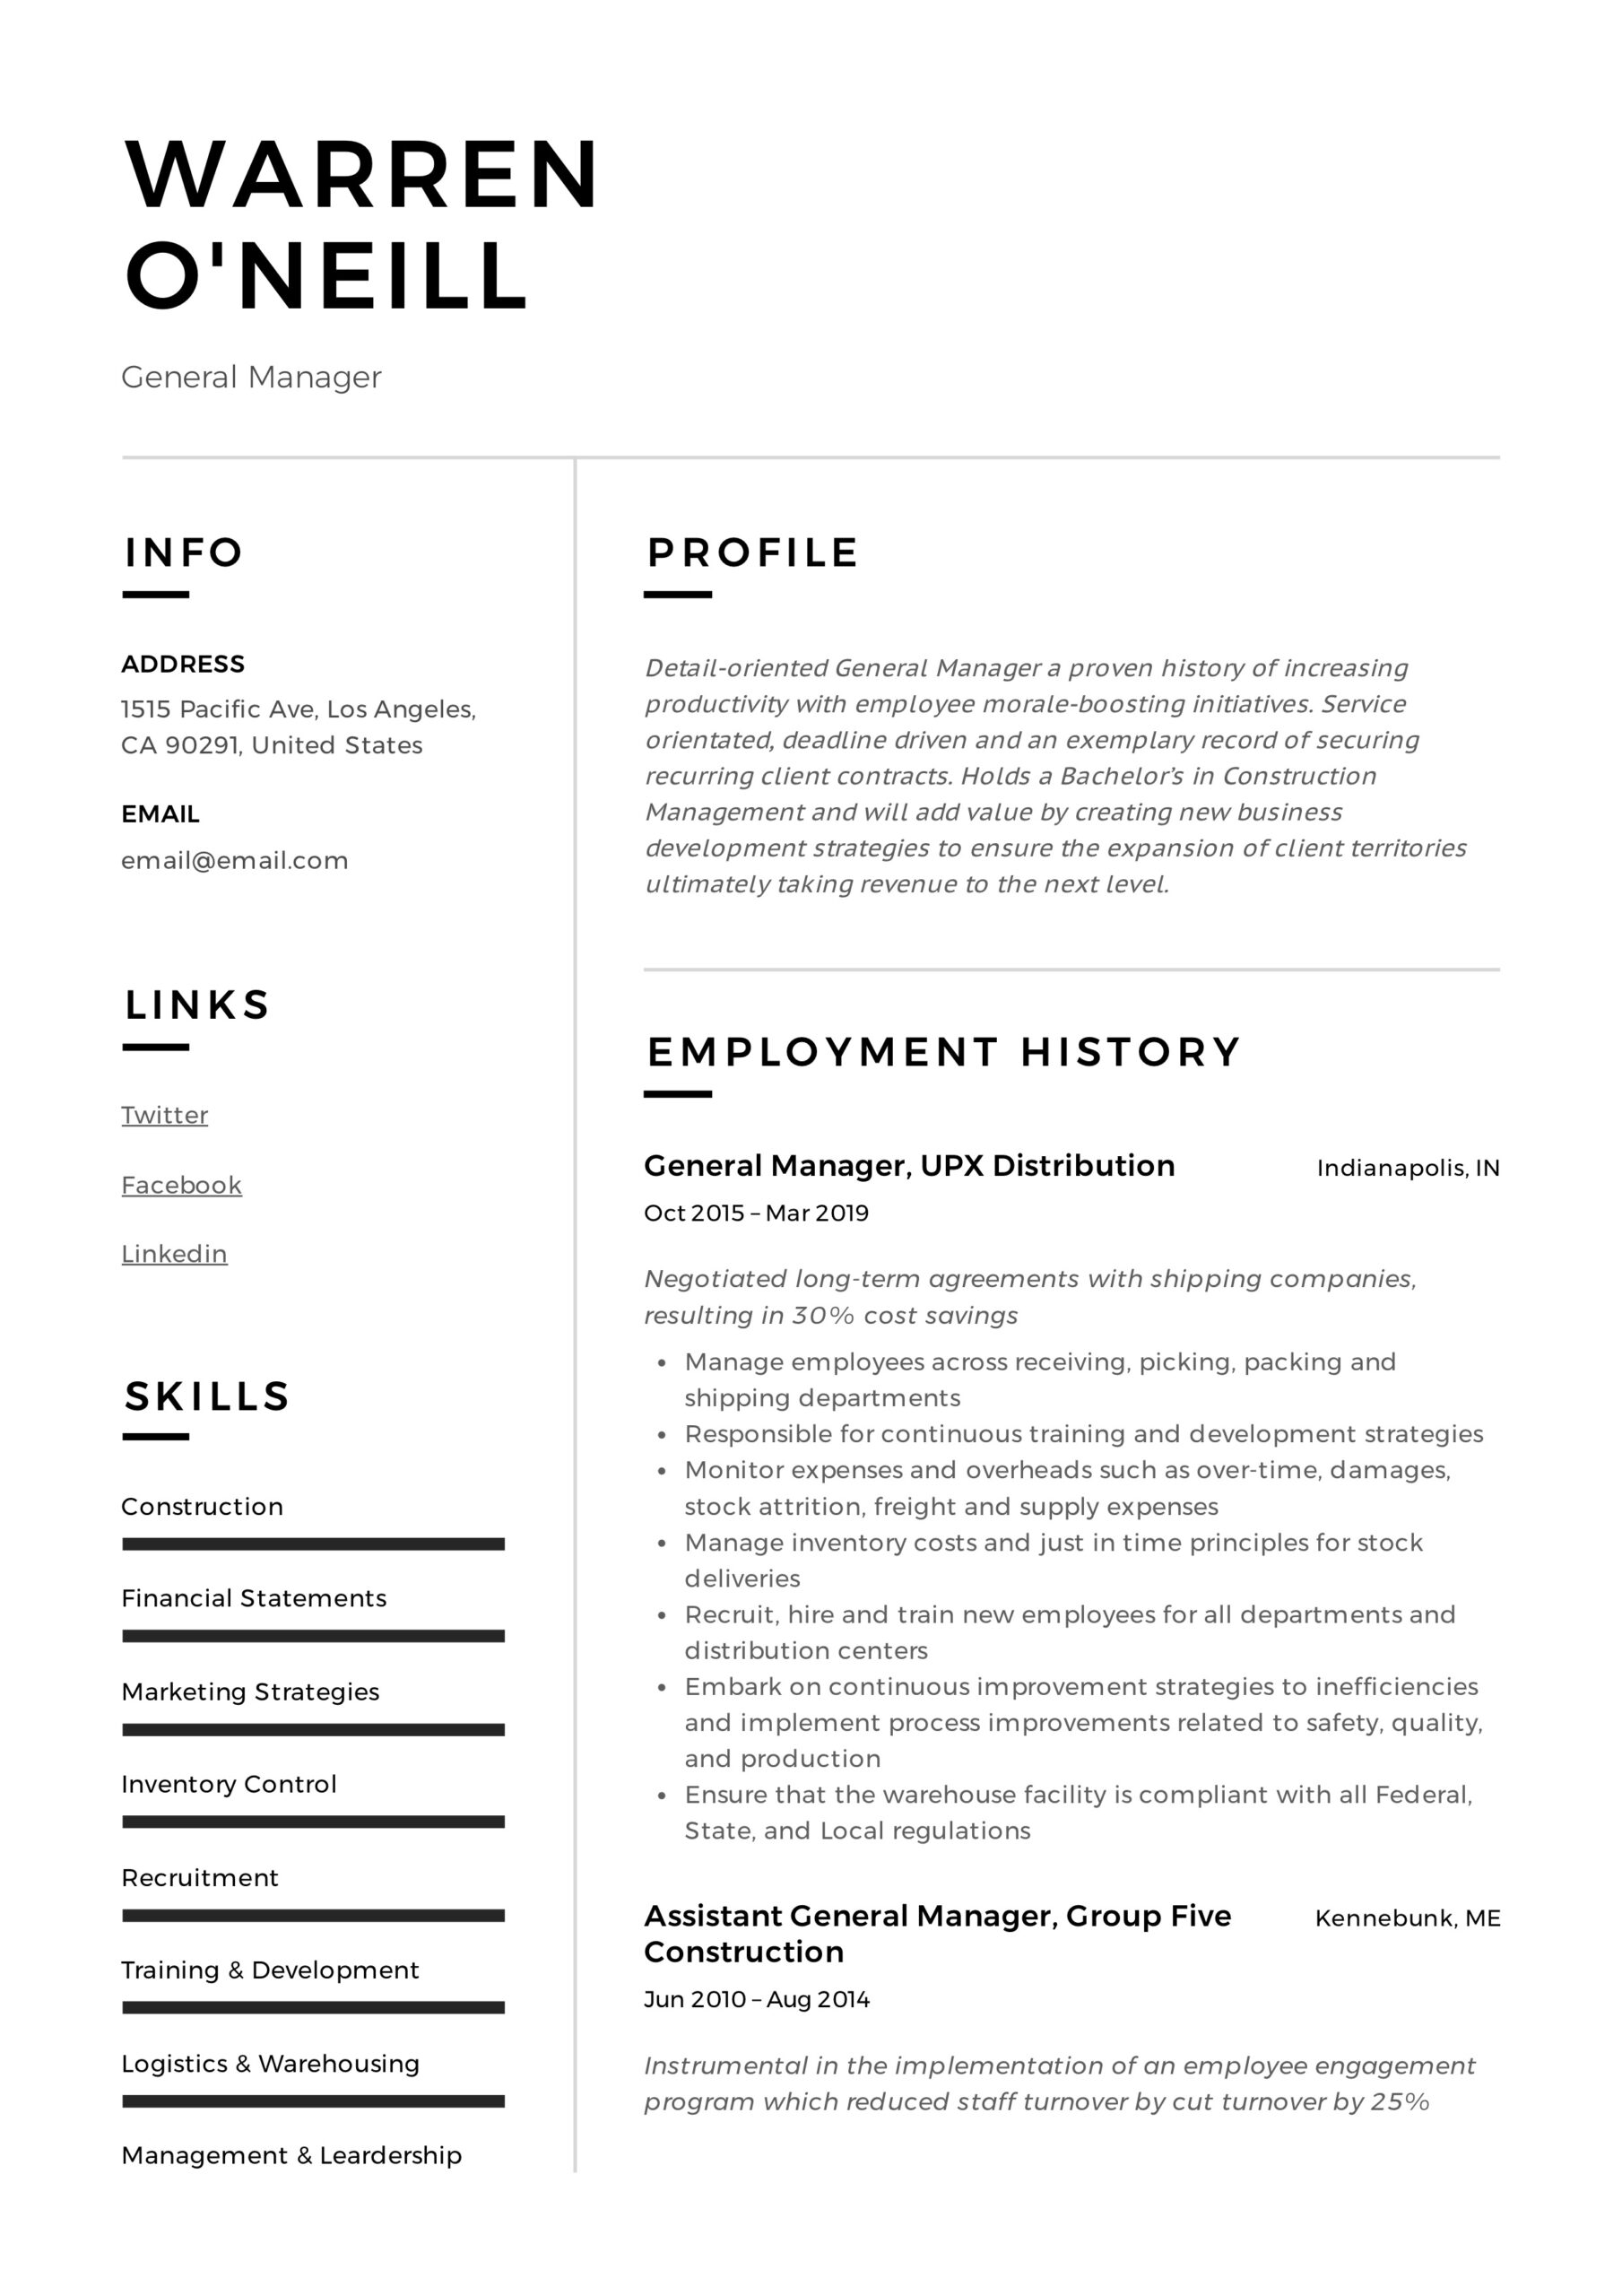 general manager resume writing guide examples pdf restaurant neill advertise services Resume Restaurant General Manager Resume